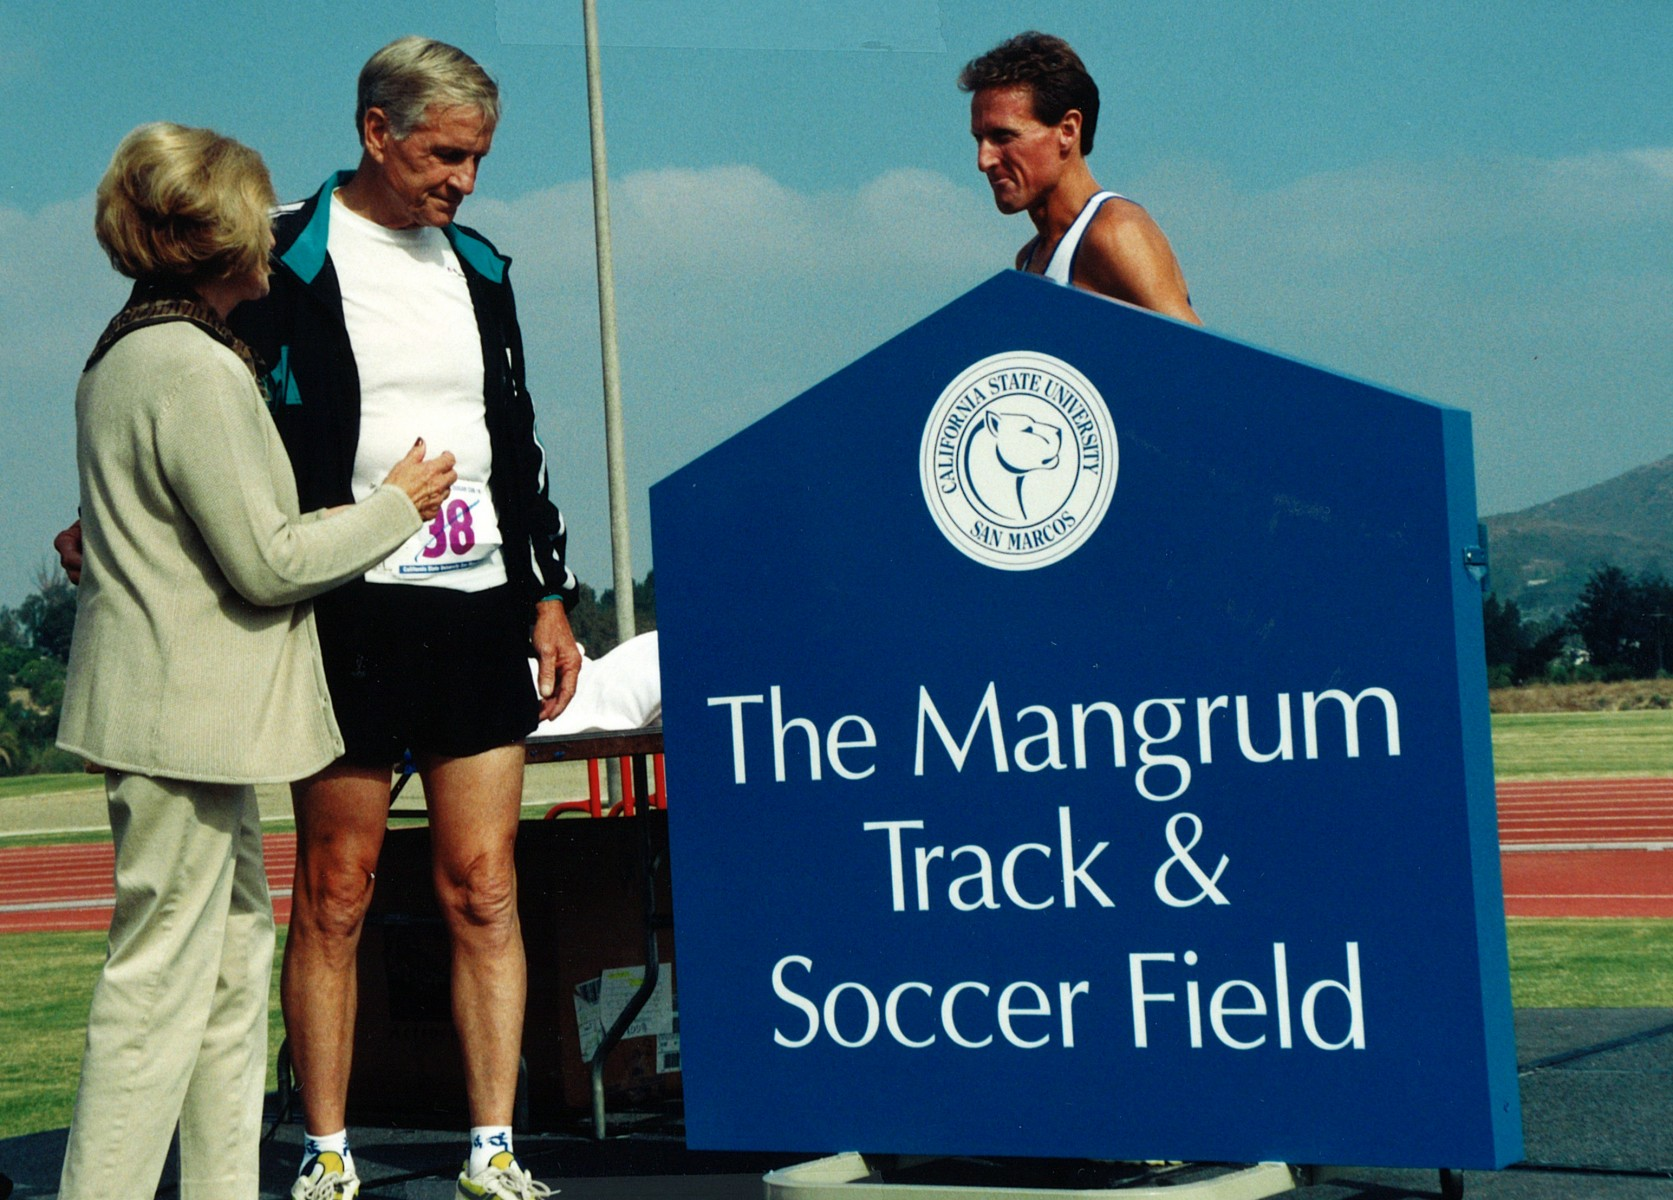 Bob and Ruth Mangrum join Steve Scott at the unveiling of the sign at The Mangrum Track & Soccer Field.